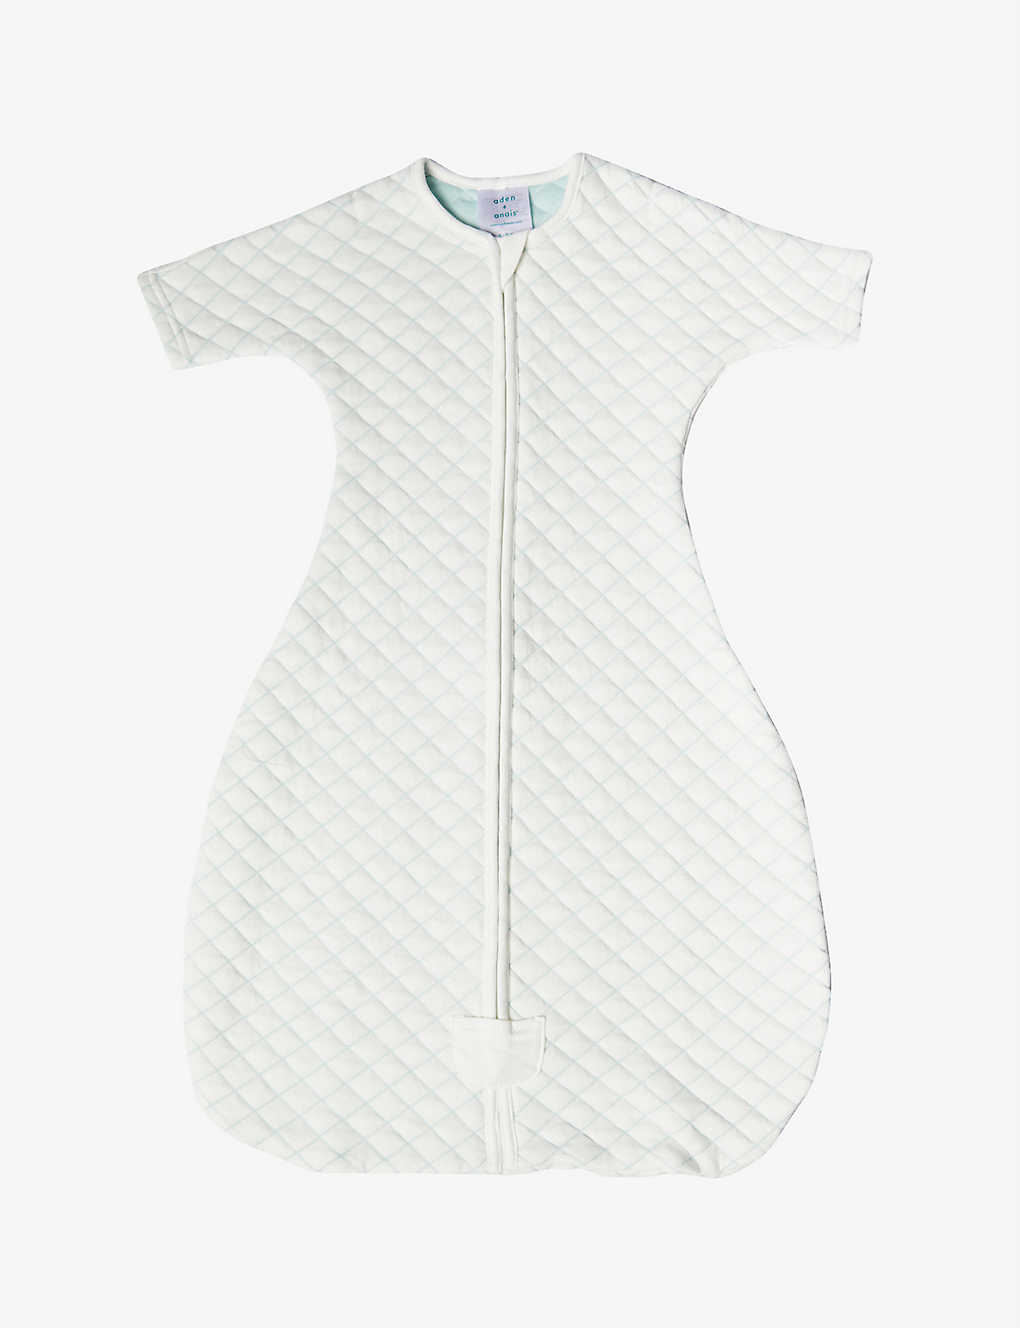 ADEN + ANAIS: Snug-fit quilted sleeping bag 1.5tog 6-9 months